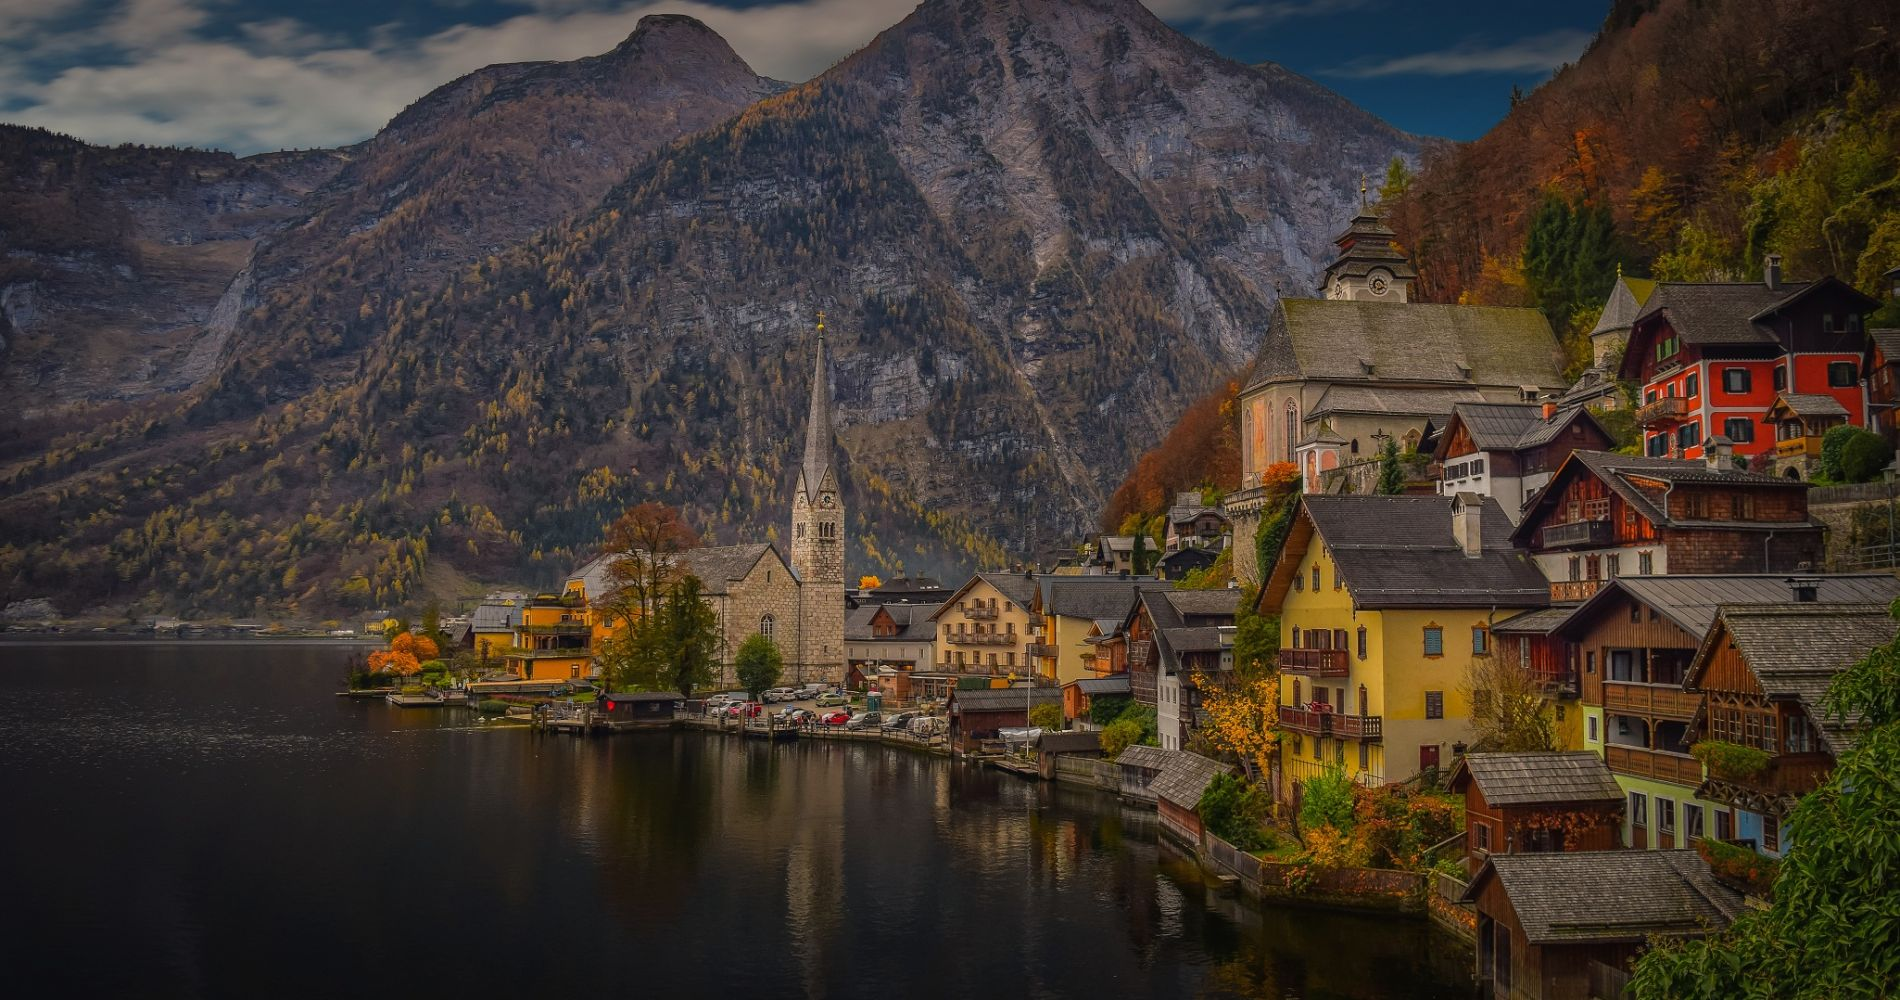 Day Tour Of Hallstatt From Salzburg